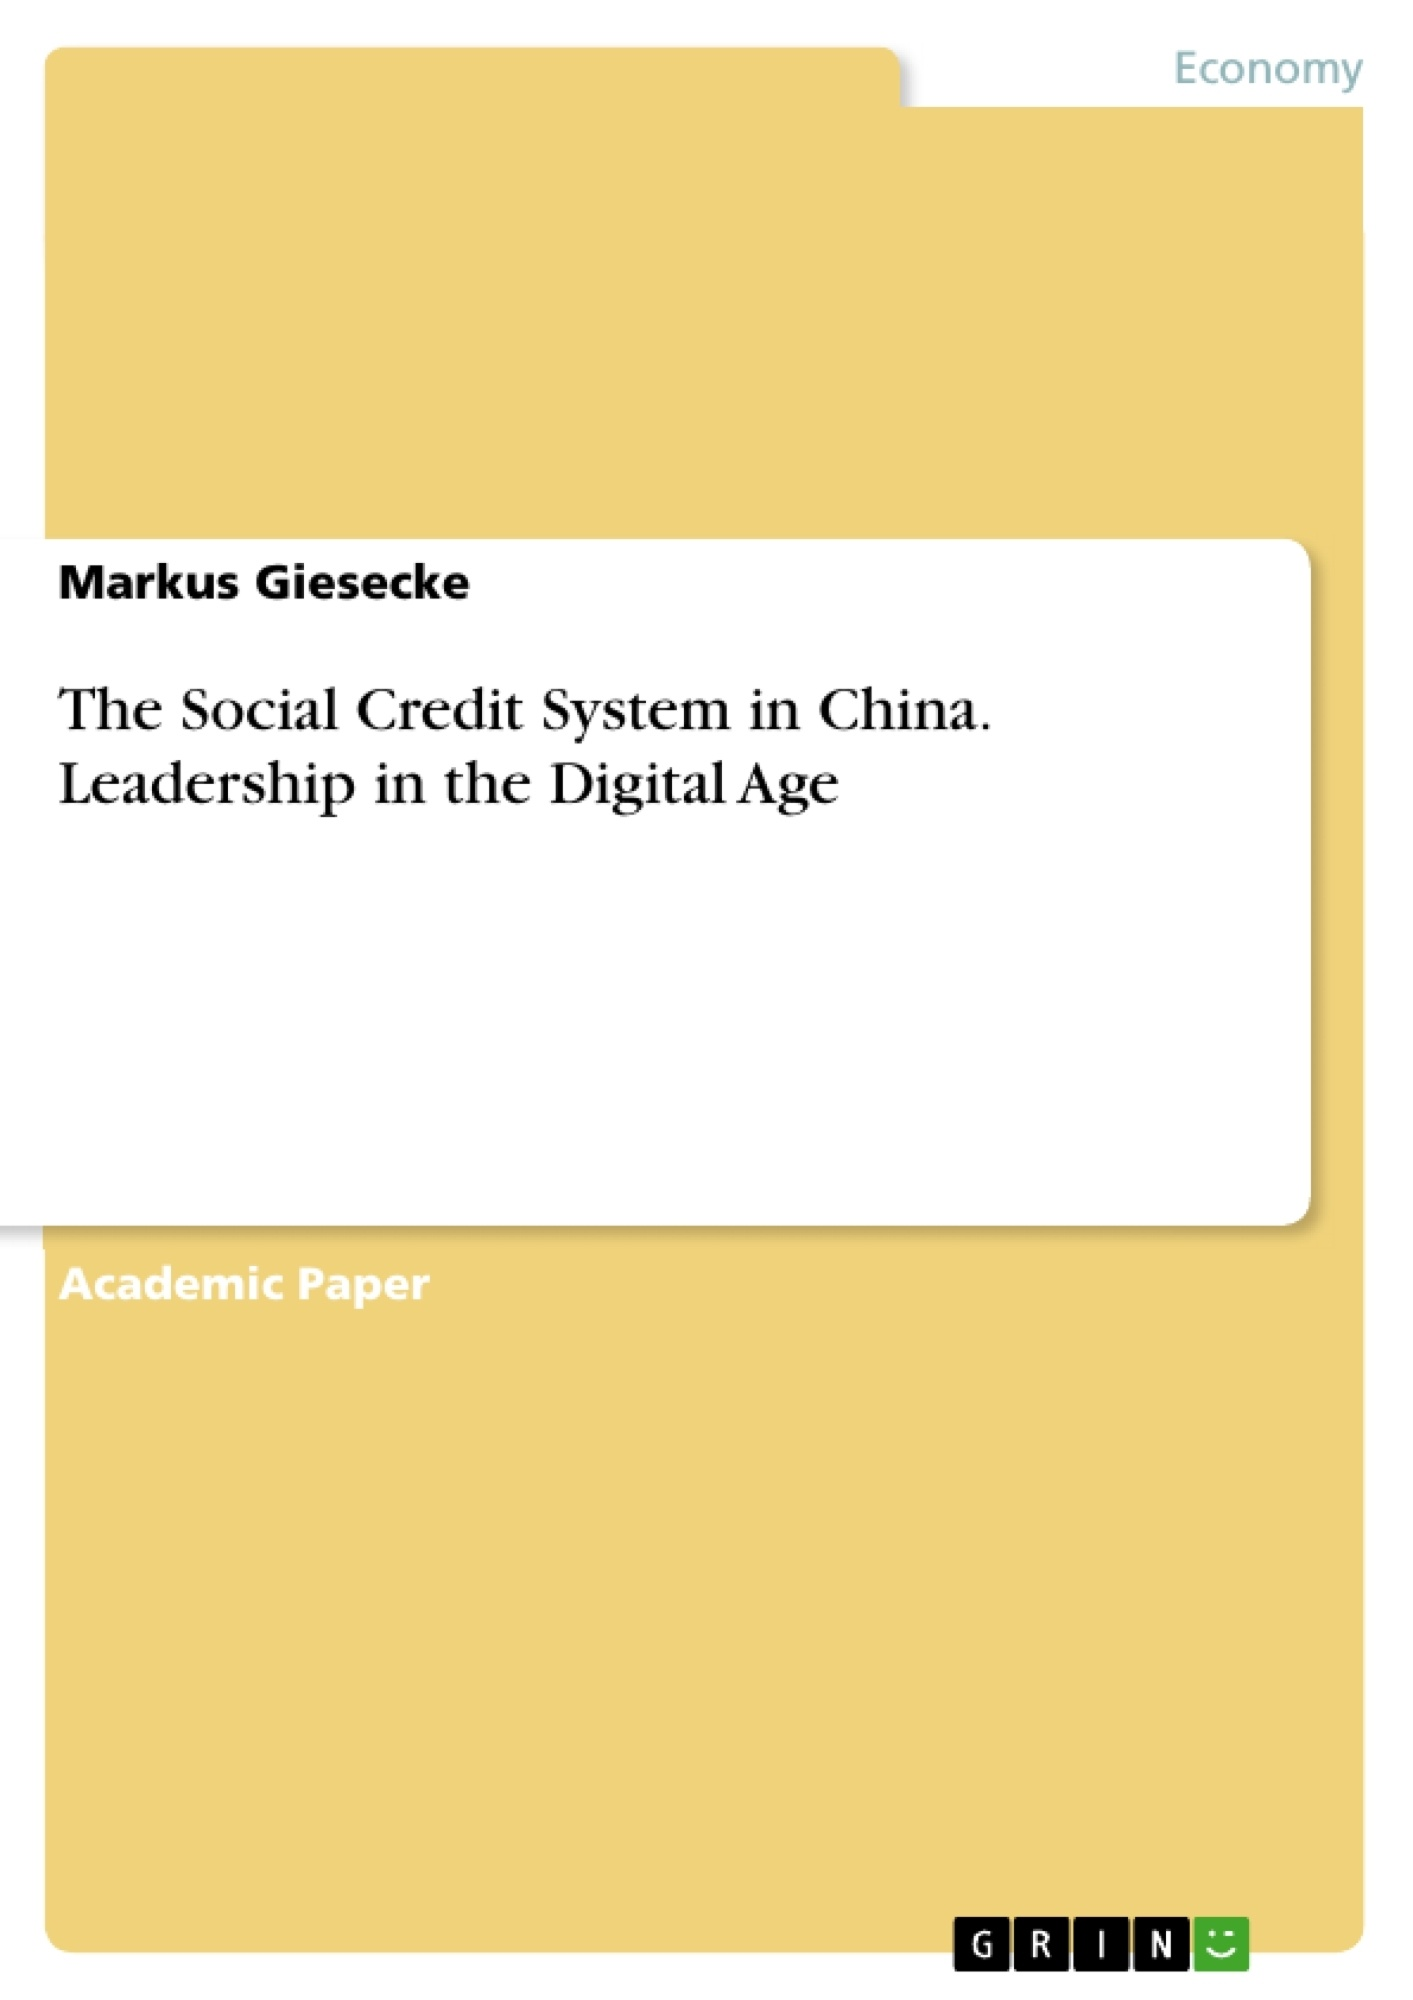 Title: The Social Credit System in China. Leadership in the Digital Age